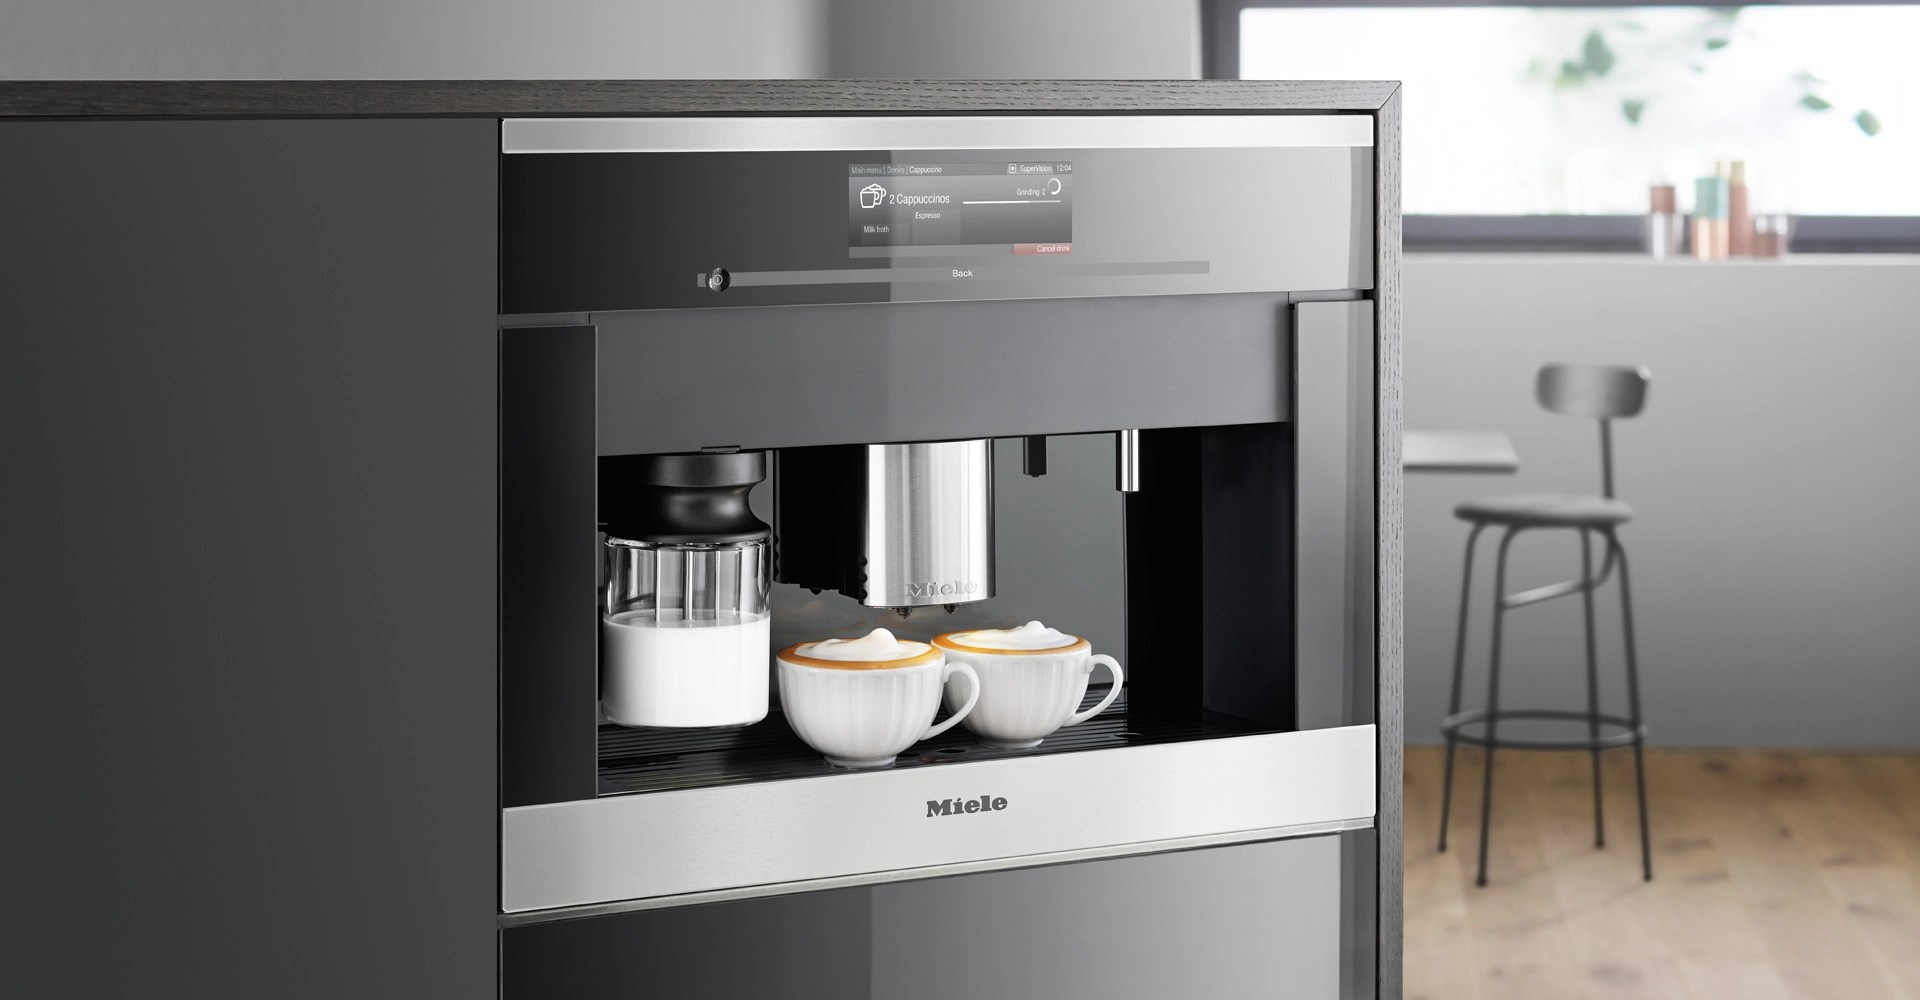 miele kitchen appliances design ideas avoid the morning coffee shops with a new built in machine from avenue appliance